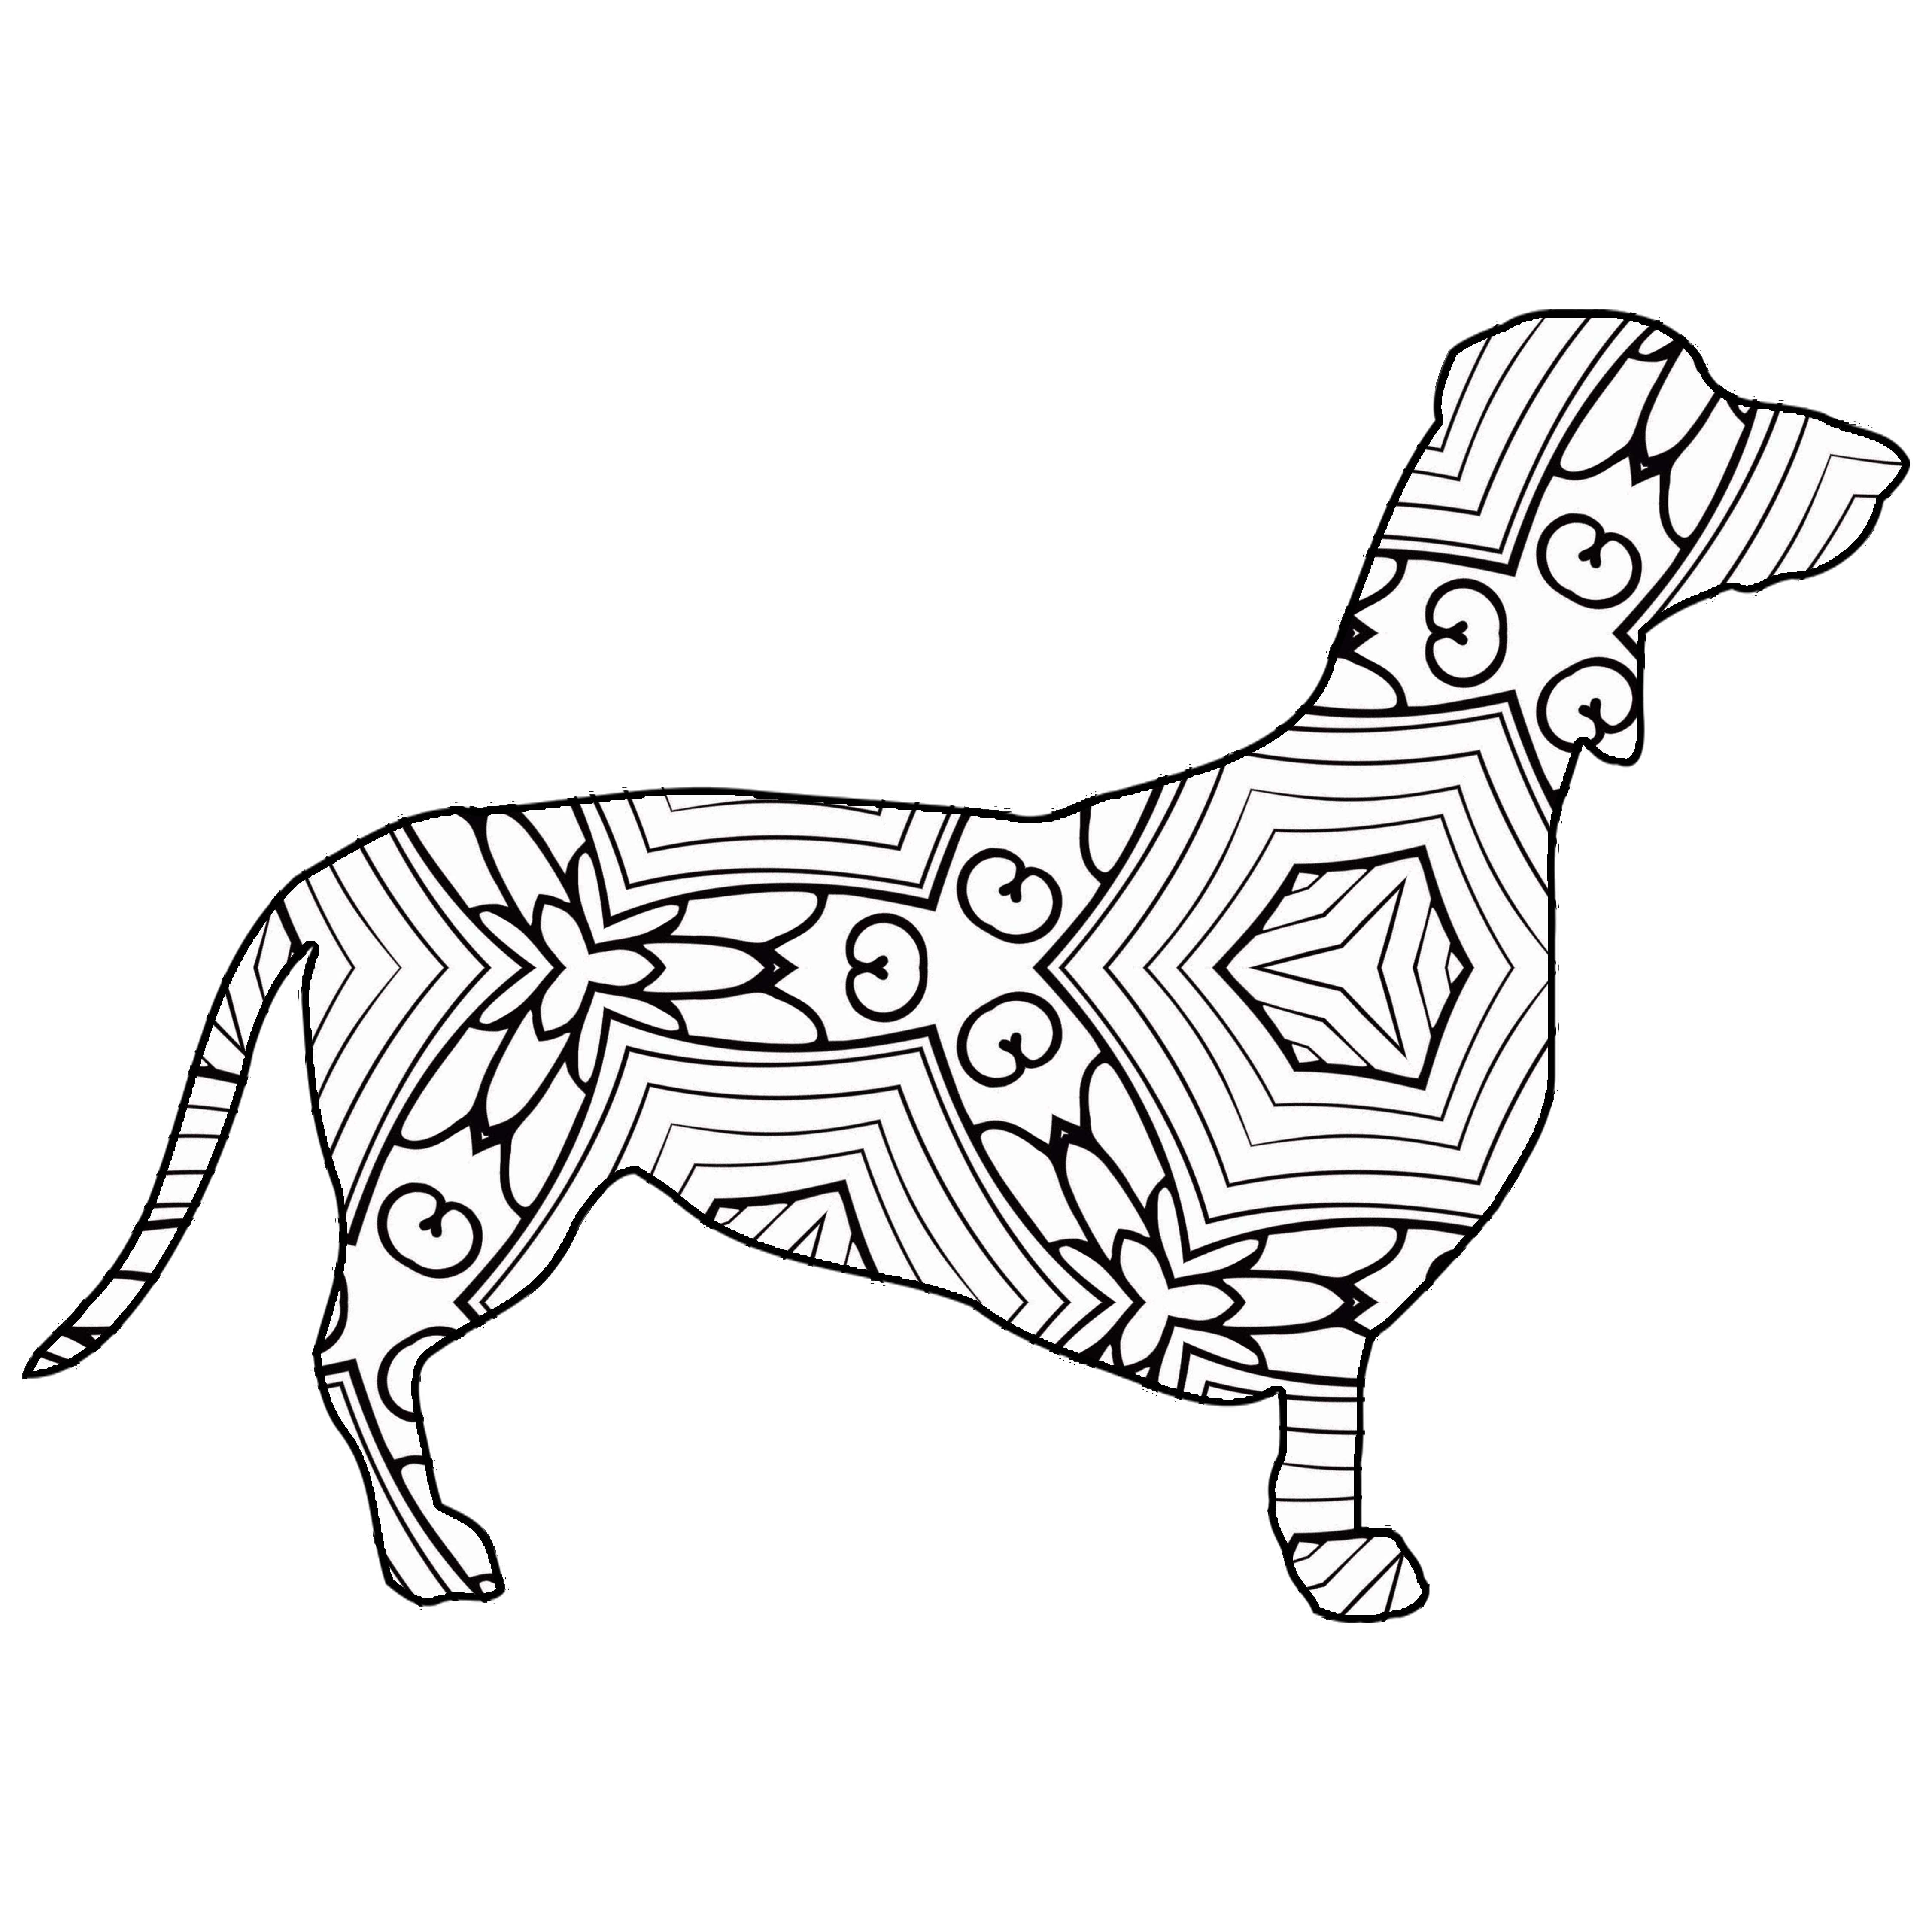 30 Free Printable Geometric Animal Coloring Pages   The ...